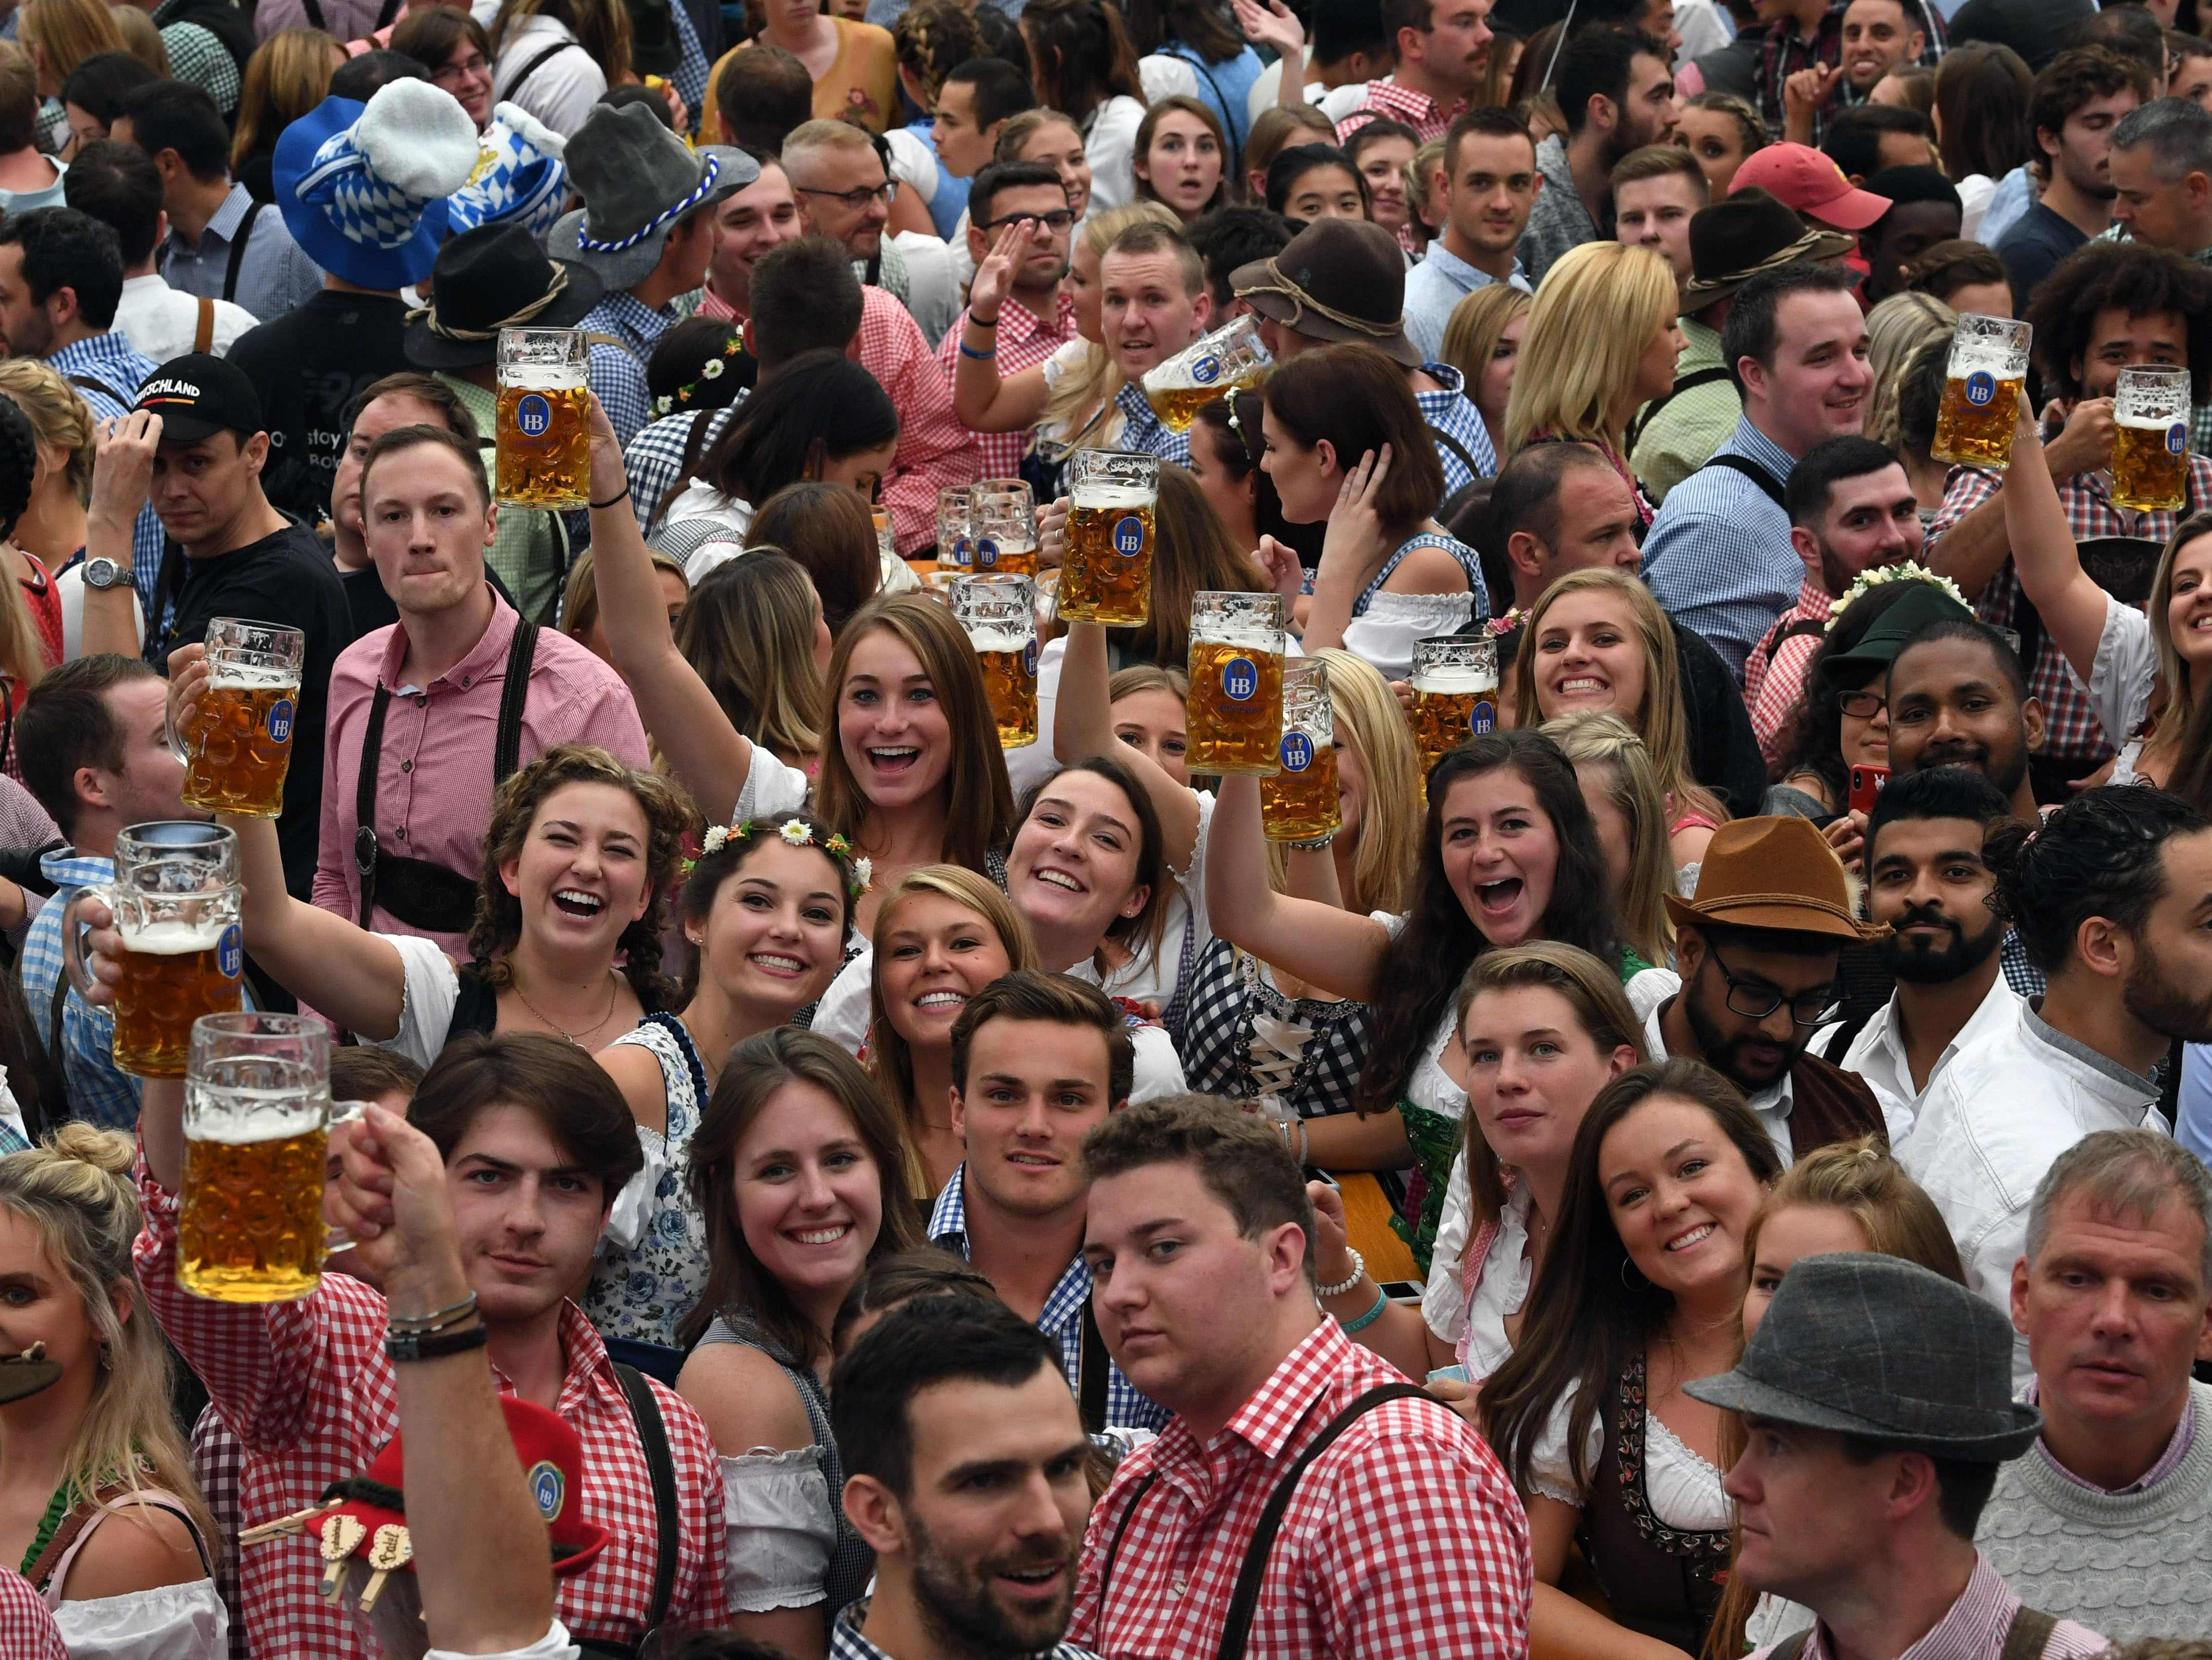 Prost! Festival-goers lift their glasses for a photo.